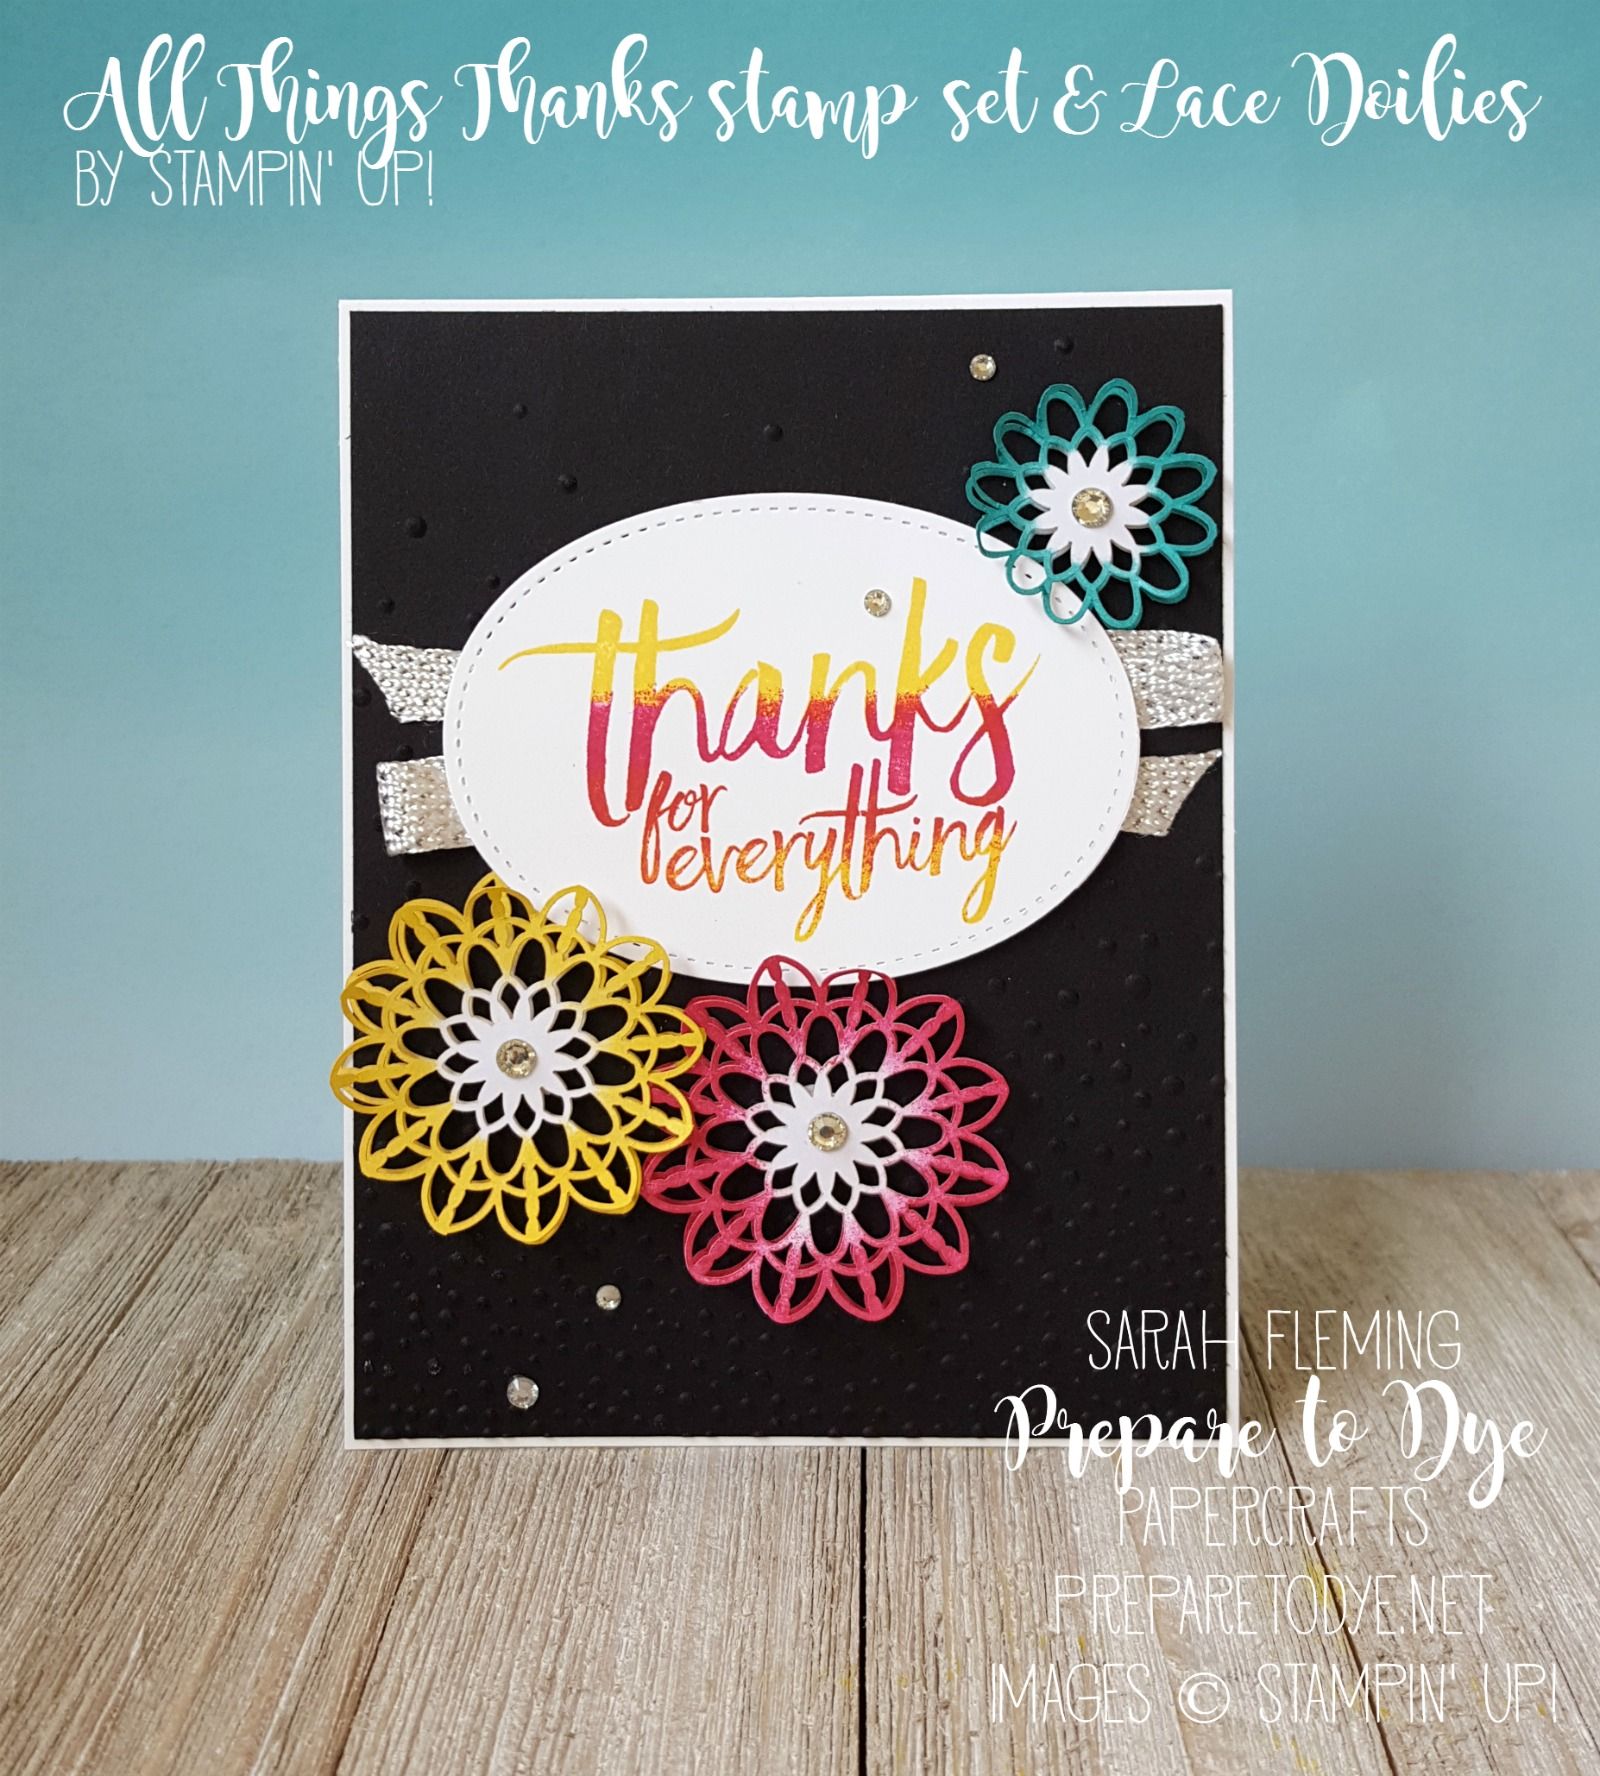 Stampin' Up! All Things Thanks stamps and Lace Doilies - Kylie Bertucci's International Blog Highlight - Sarah Fleming - Prepare to Dye Papercrafts